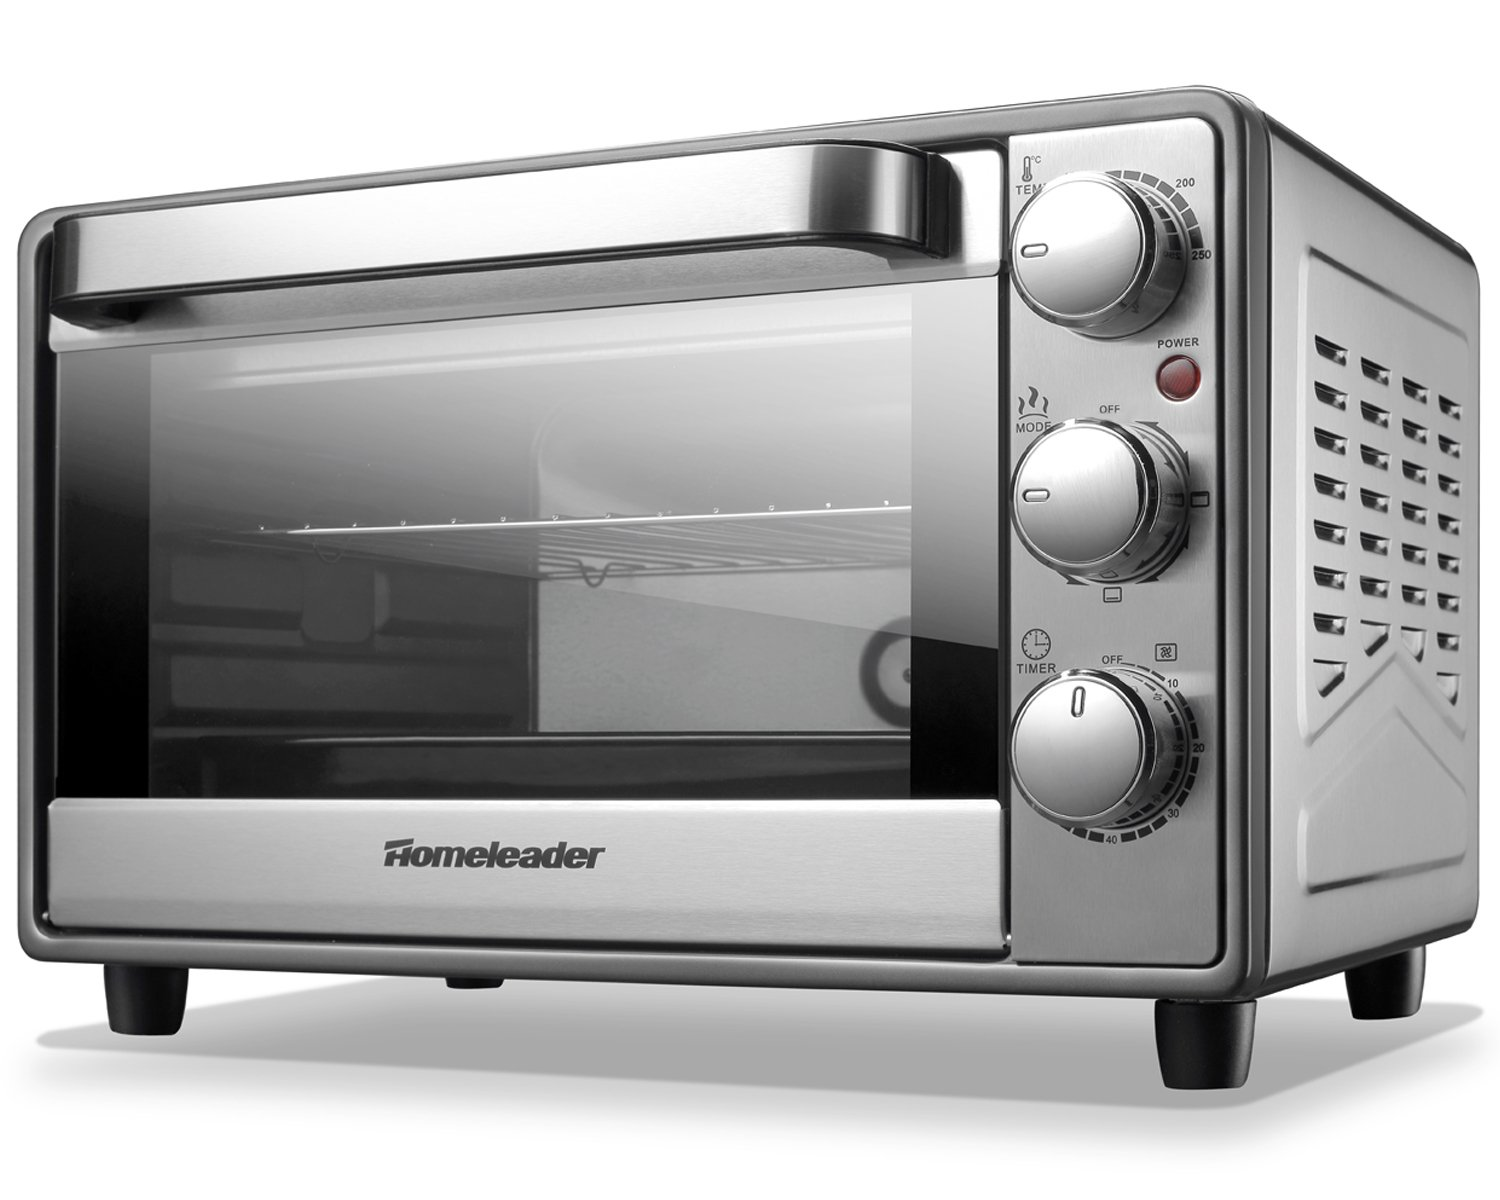 Homeleader Toaster Oven Fits 6-Slice Bread/12-Inch Pizza, Contertop Oven with Convection/Toast/Bake/Broil Function, Includes Bake Pan/Broil Rack&Tray Handle, Stainless Steel K10-044